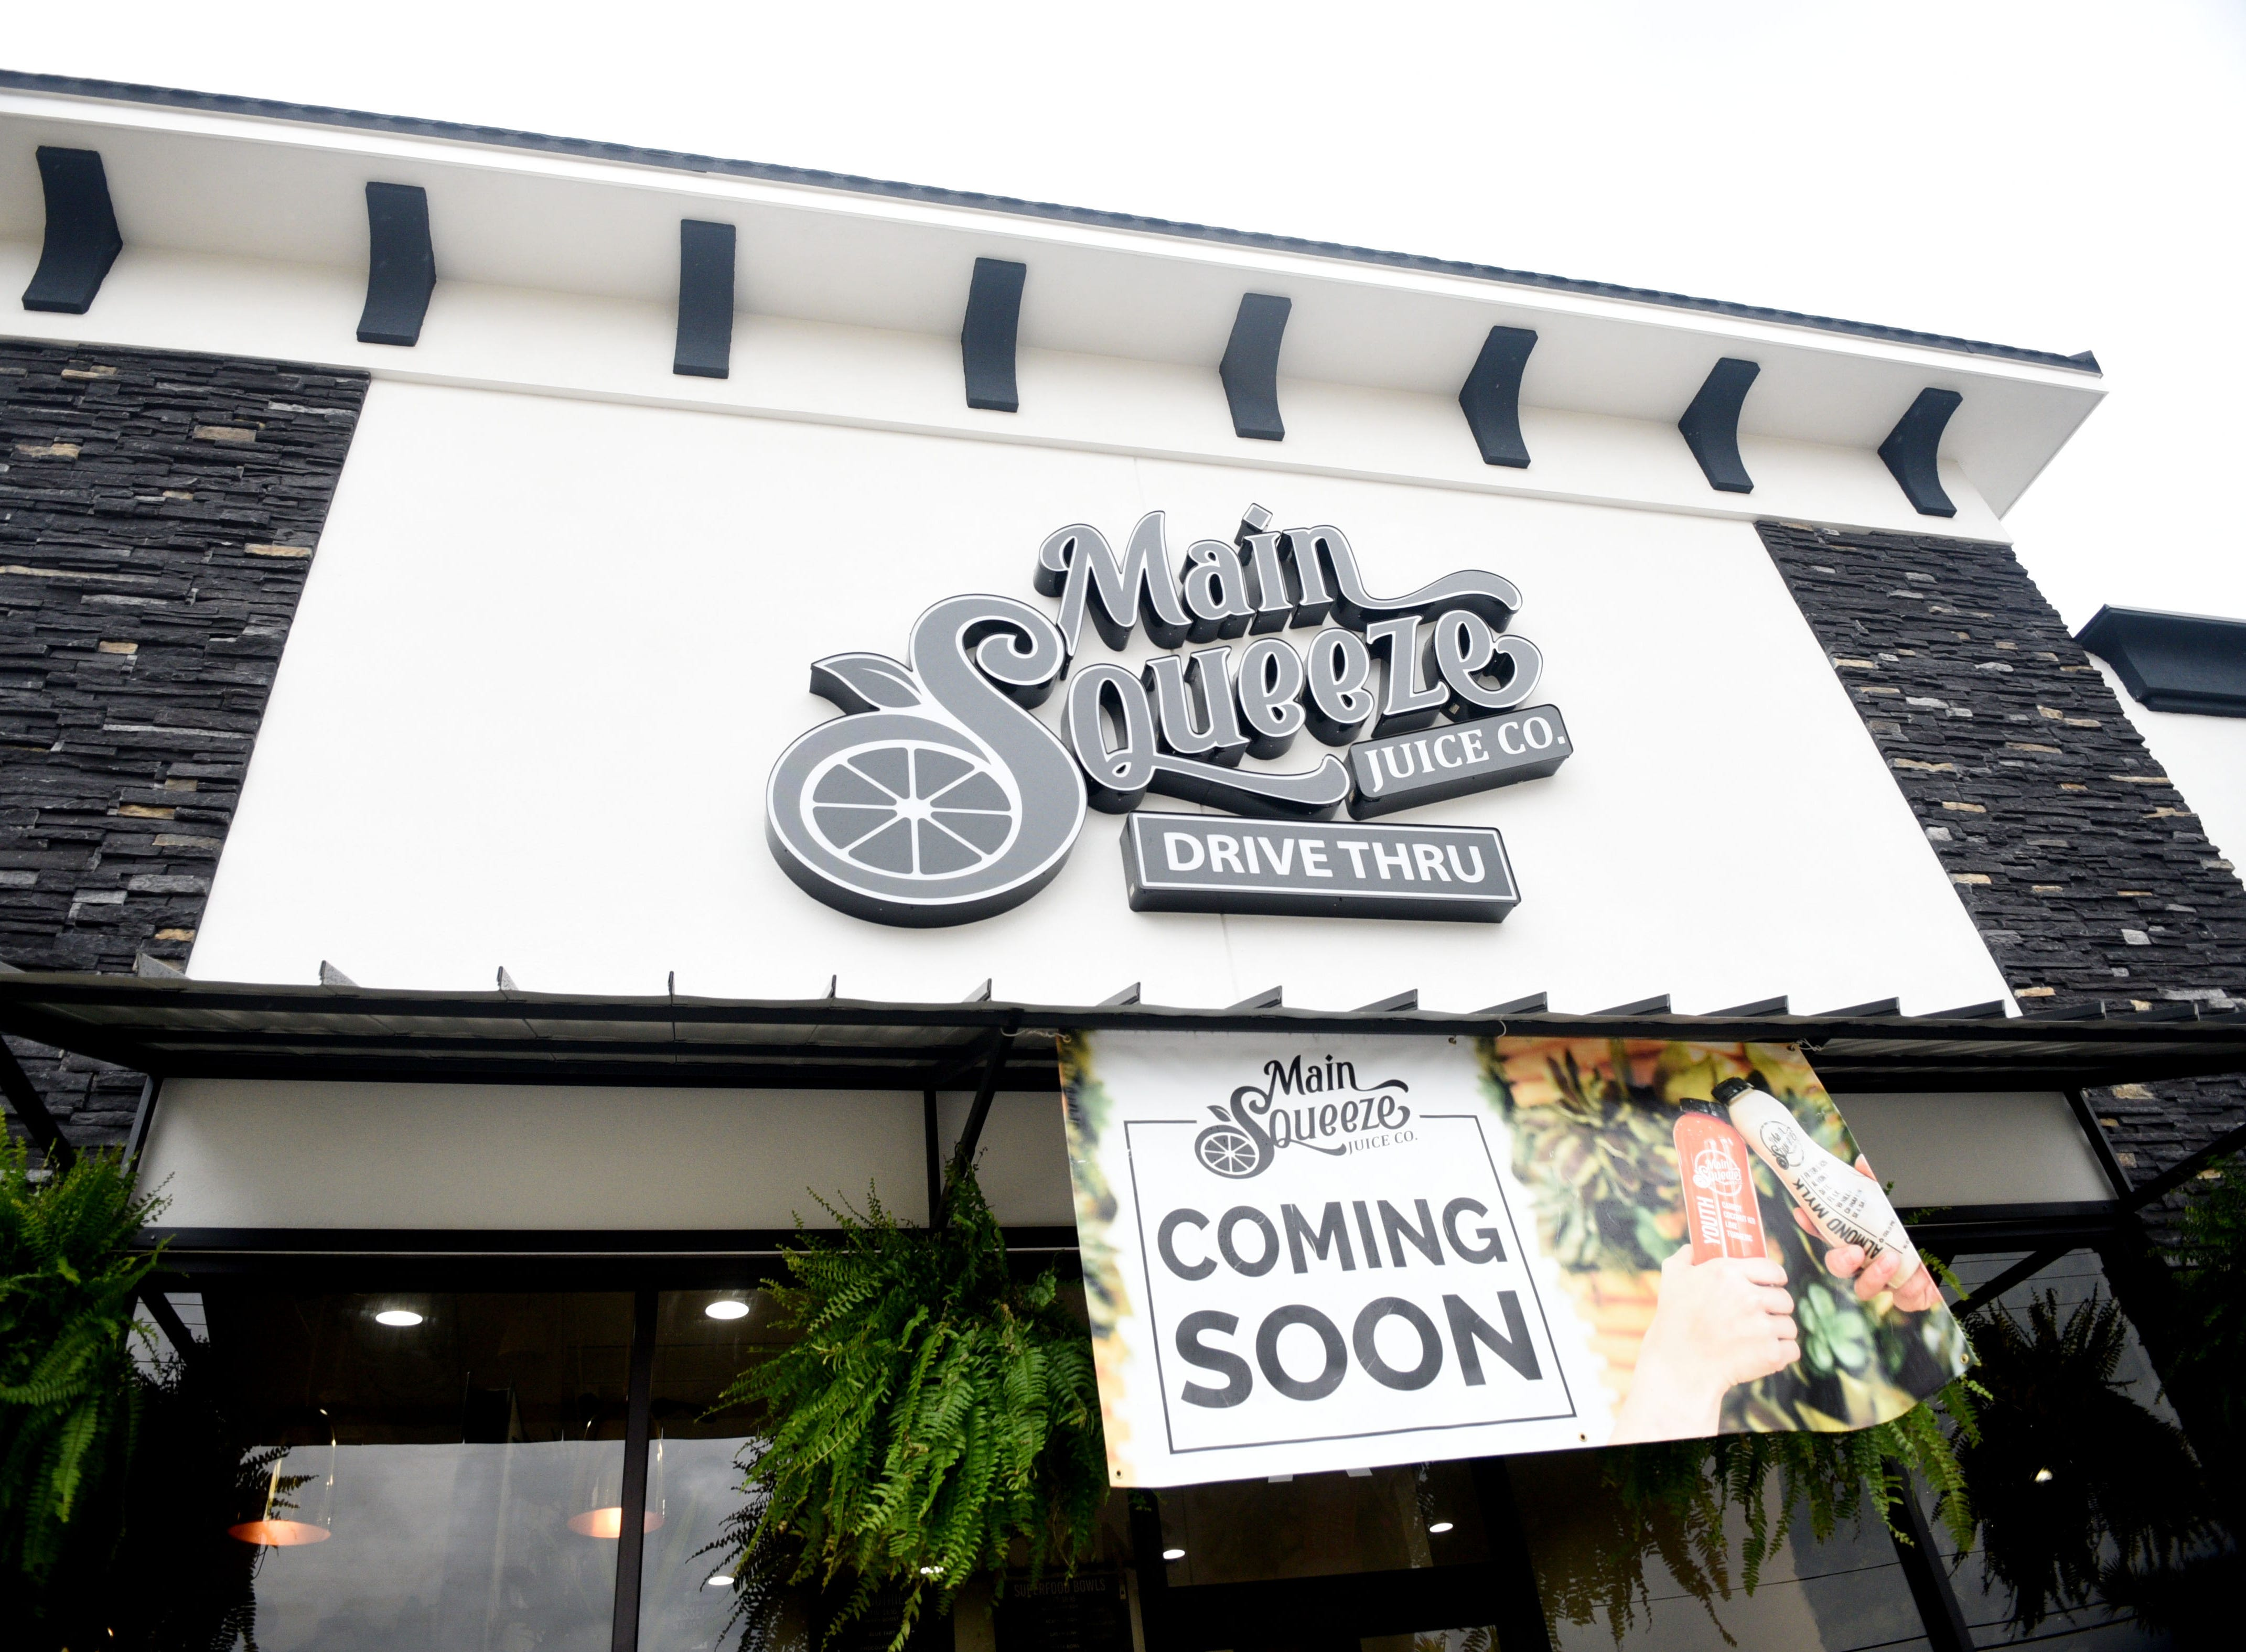 Main Squeeze Juice Co. on Airline Drive in Bossier City.